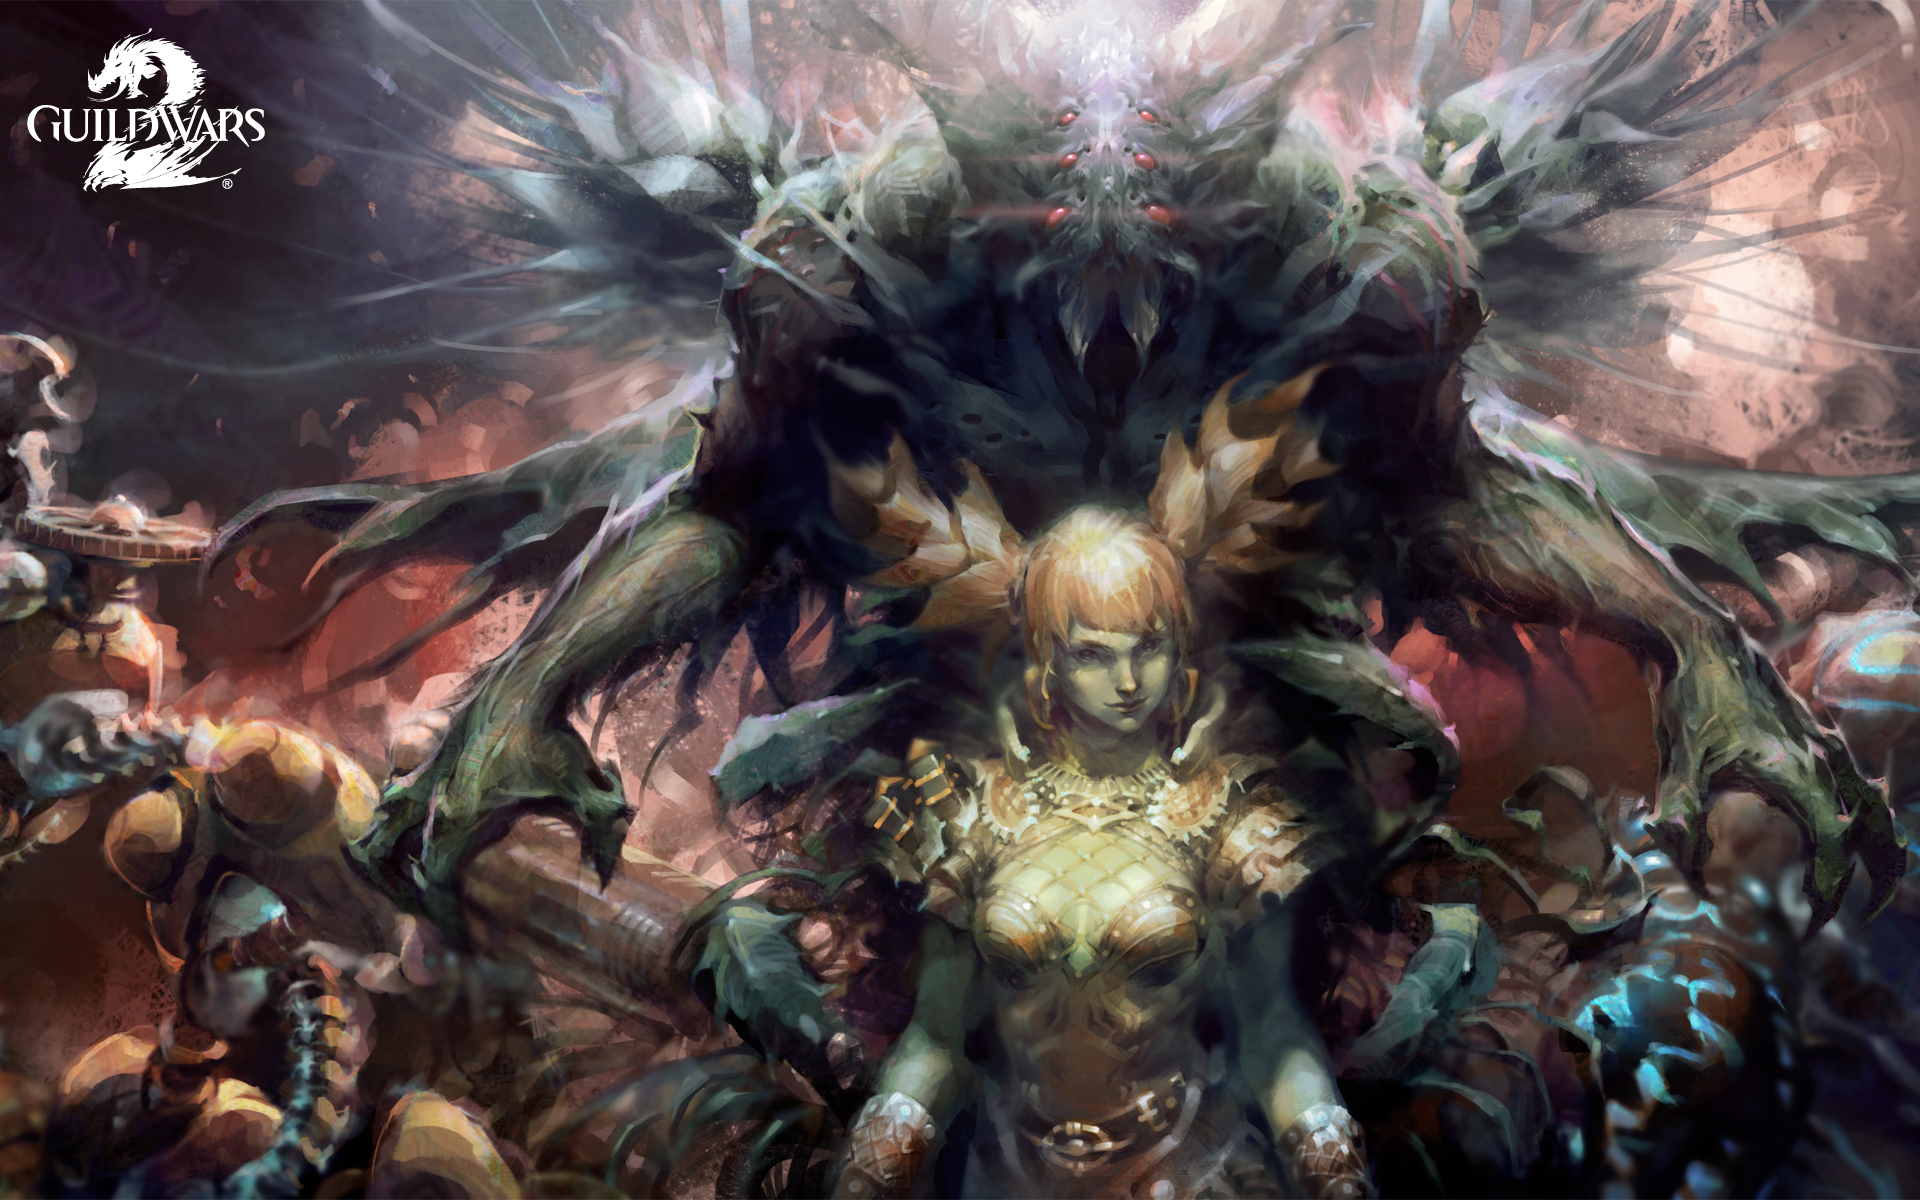 Guild Wars 2 Images The Nightmares Within HD Wallpaper And Background Photos